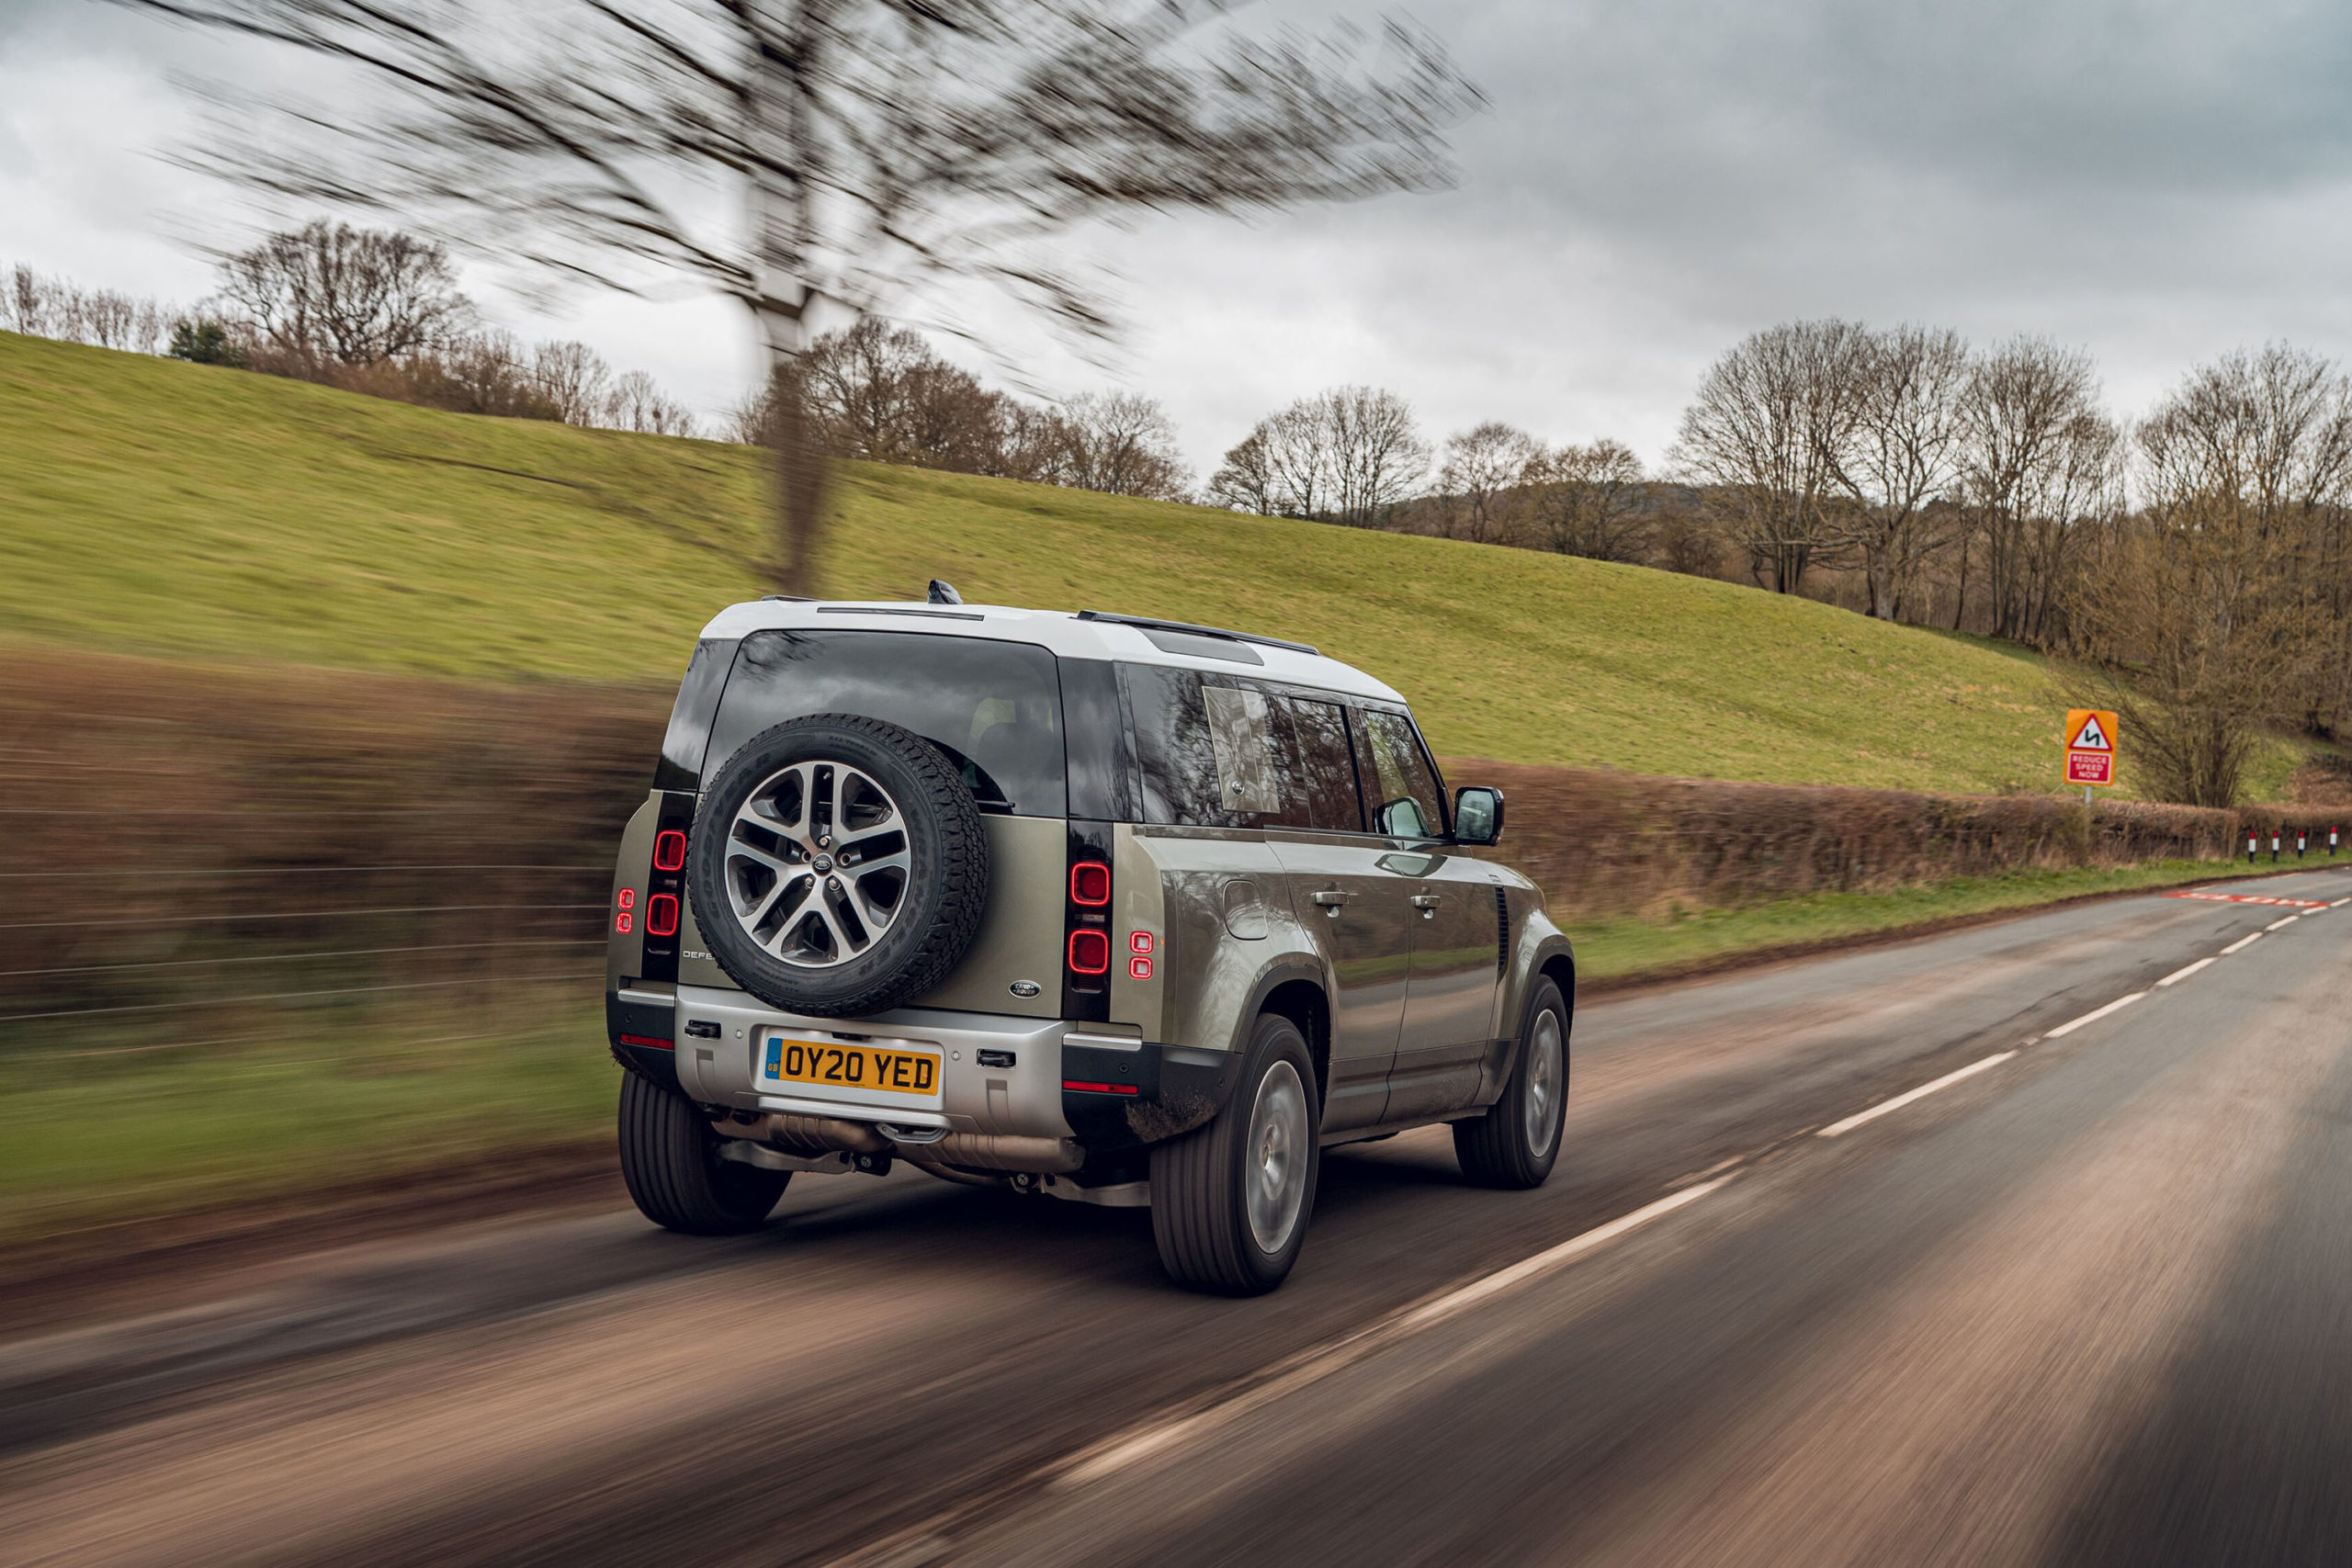 2020-Land-Rover-Defender-on-road-rear-scaled